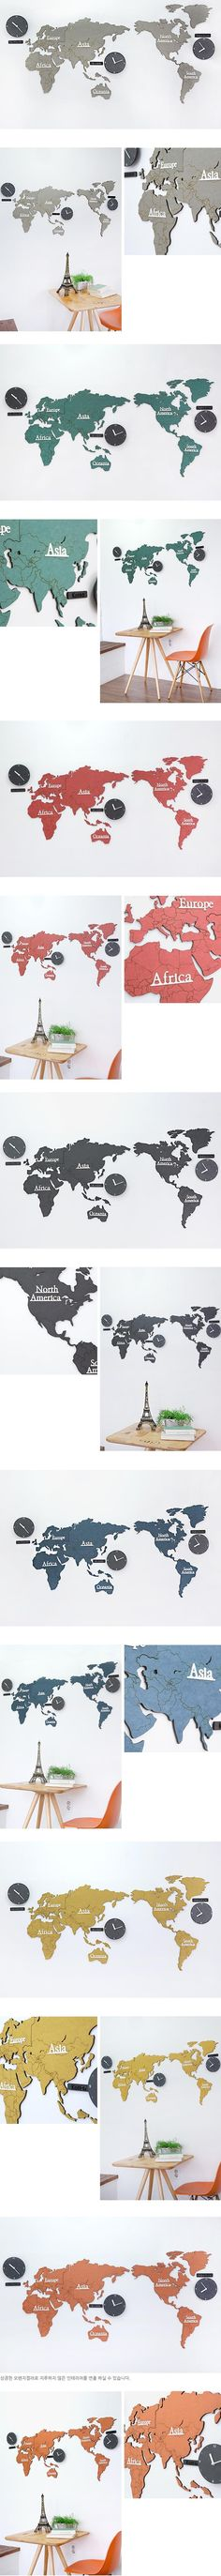 Inspiring Decor Ideas to Satisfy Your Wanderlust Time zone - best of world map poster time zones